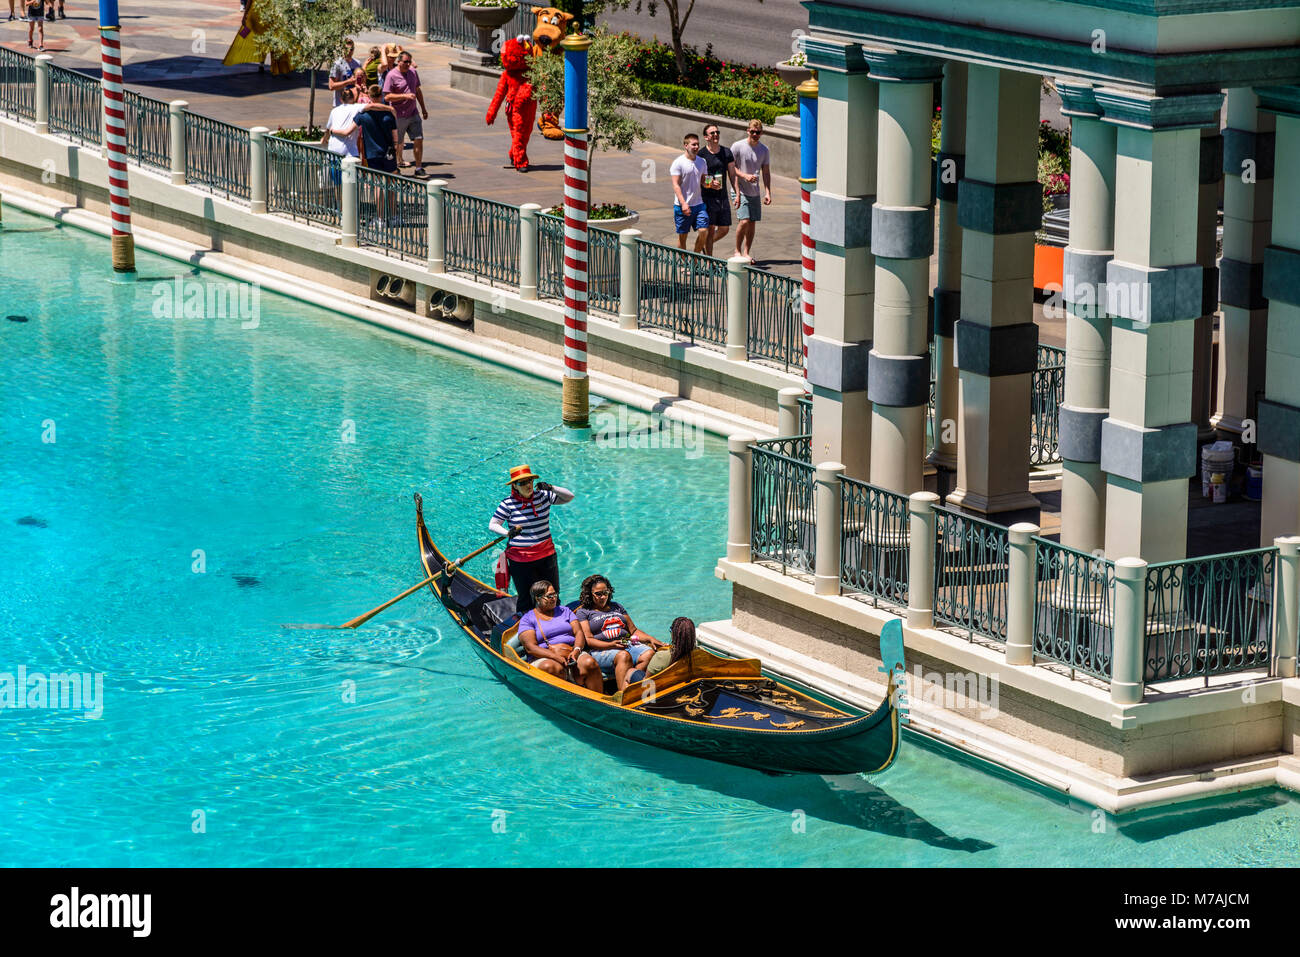 The USA, Nevada, Clark County, Las Vegas, Las Vegas Boulevard, The Strip, The Venetian, Canale Grande with gondola - Stock Image